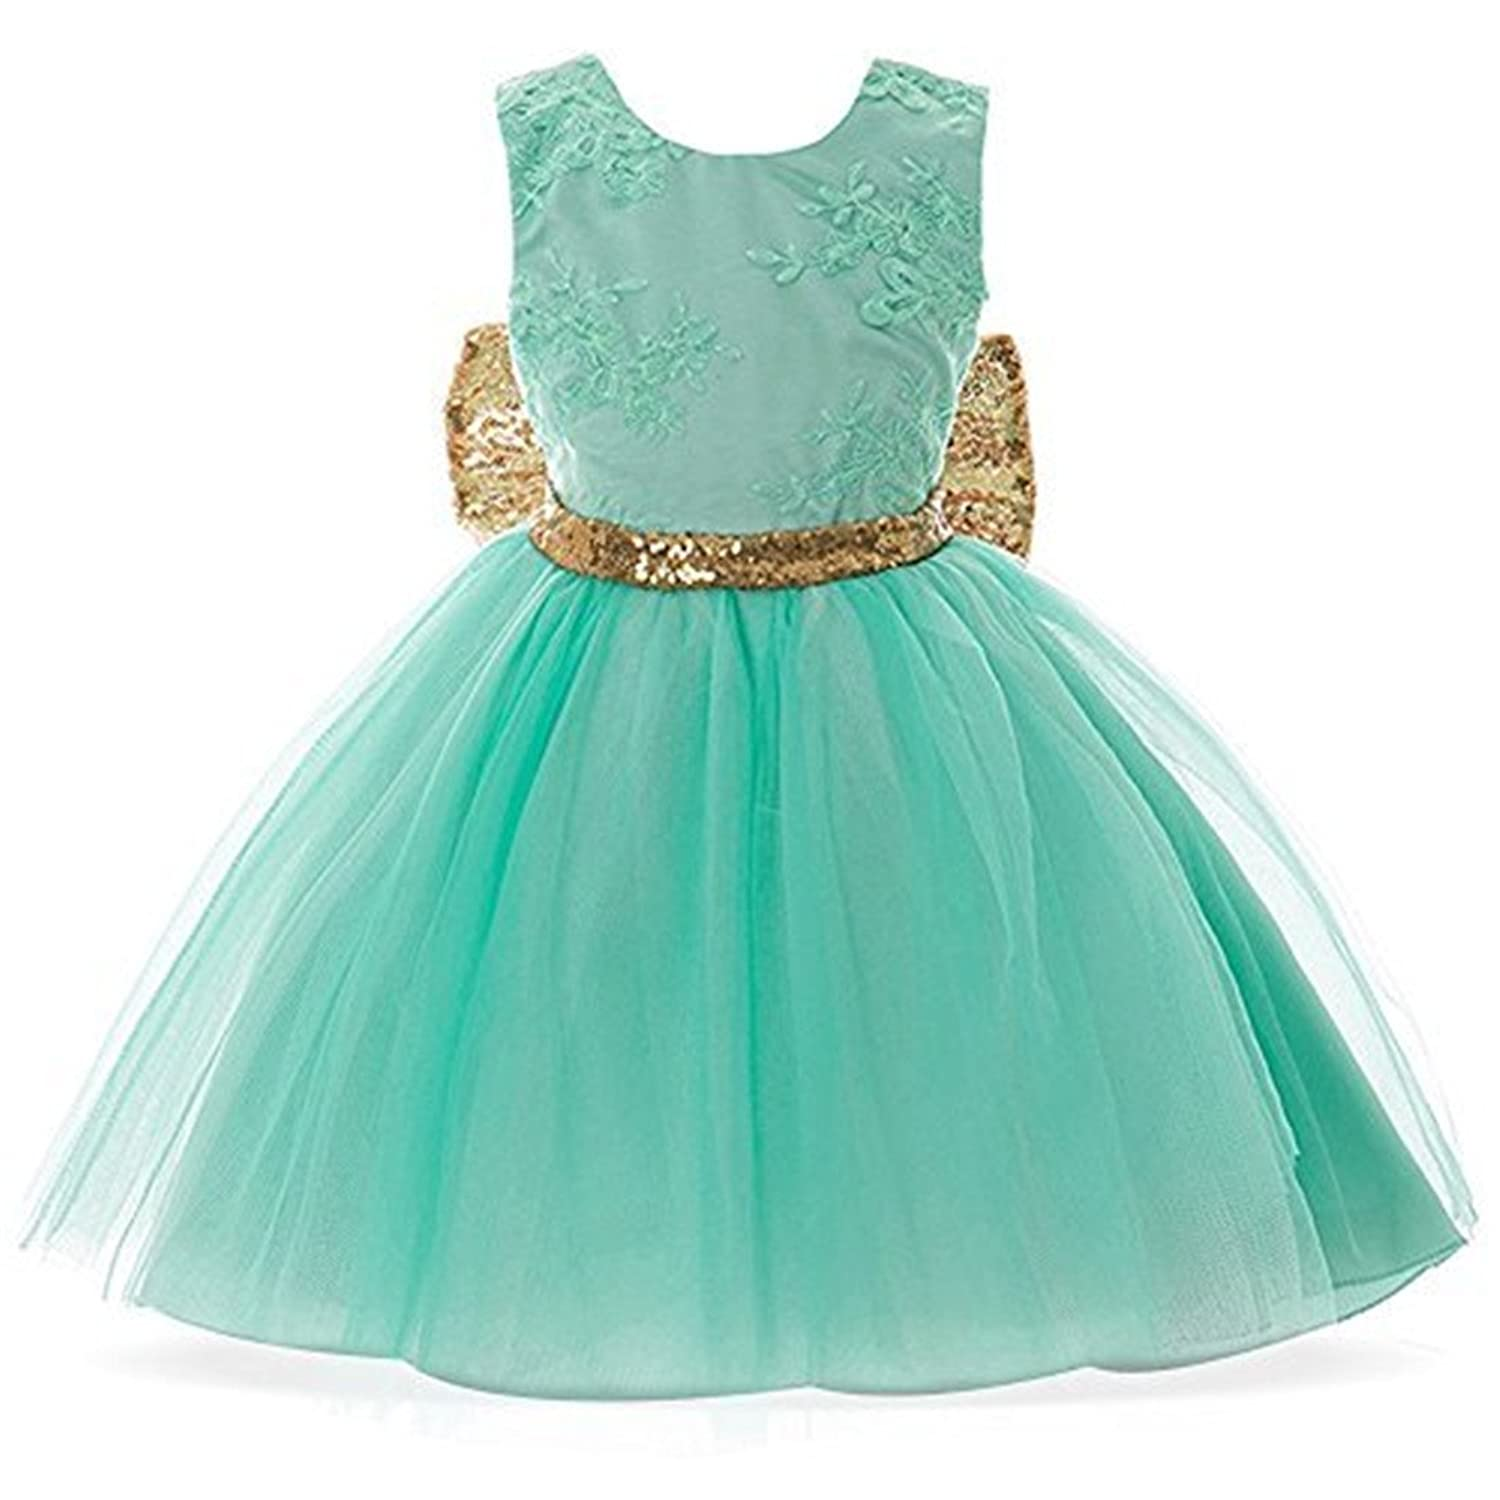 Amazon.com: FKKFYY 0-12 Years Baby Flower Girl Dress For Wedding ...